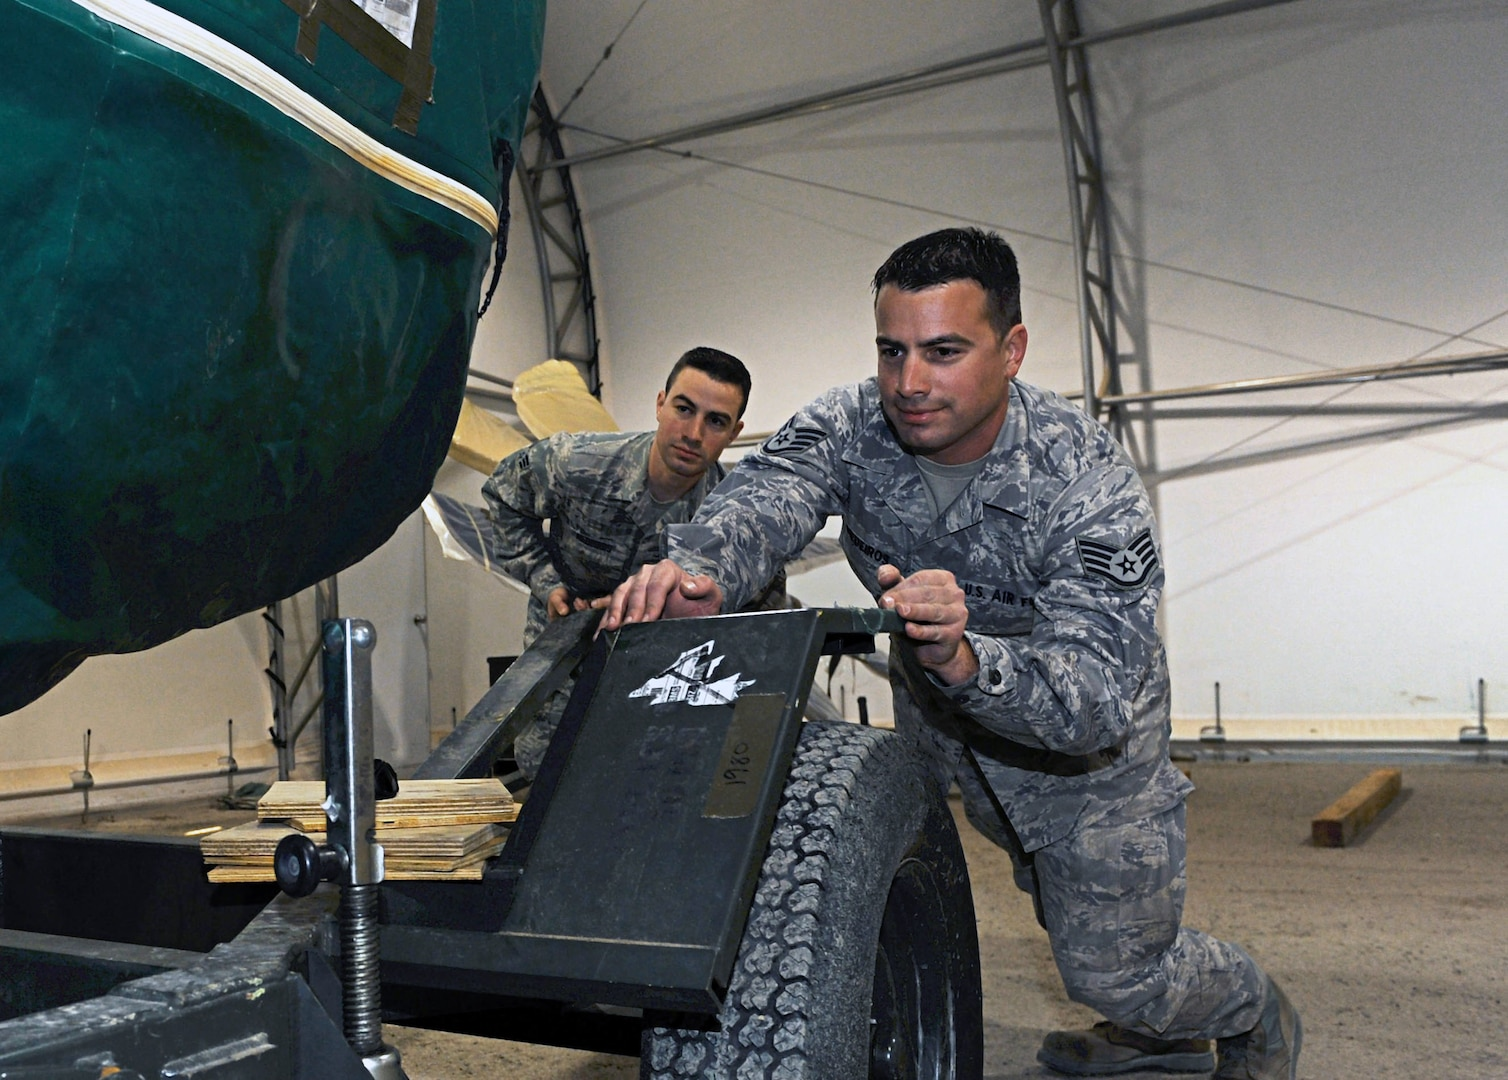 Twin brothers Air Force Staff Sgt. William Medeiros, right, and Air Force Senior Airman Barrington prepare a spare engine for a C-130J in Southeast Asia, Dec. 11, 2013. The Rhode Island Air National Guardsmen serve together with the 386th Expeditionary Aircraft Maintenance Squadron.